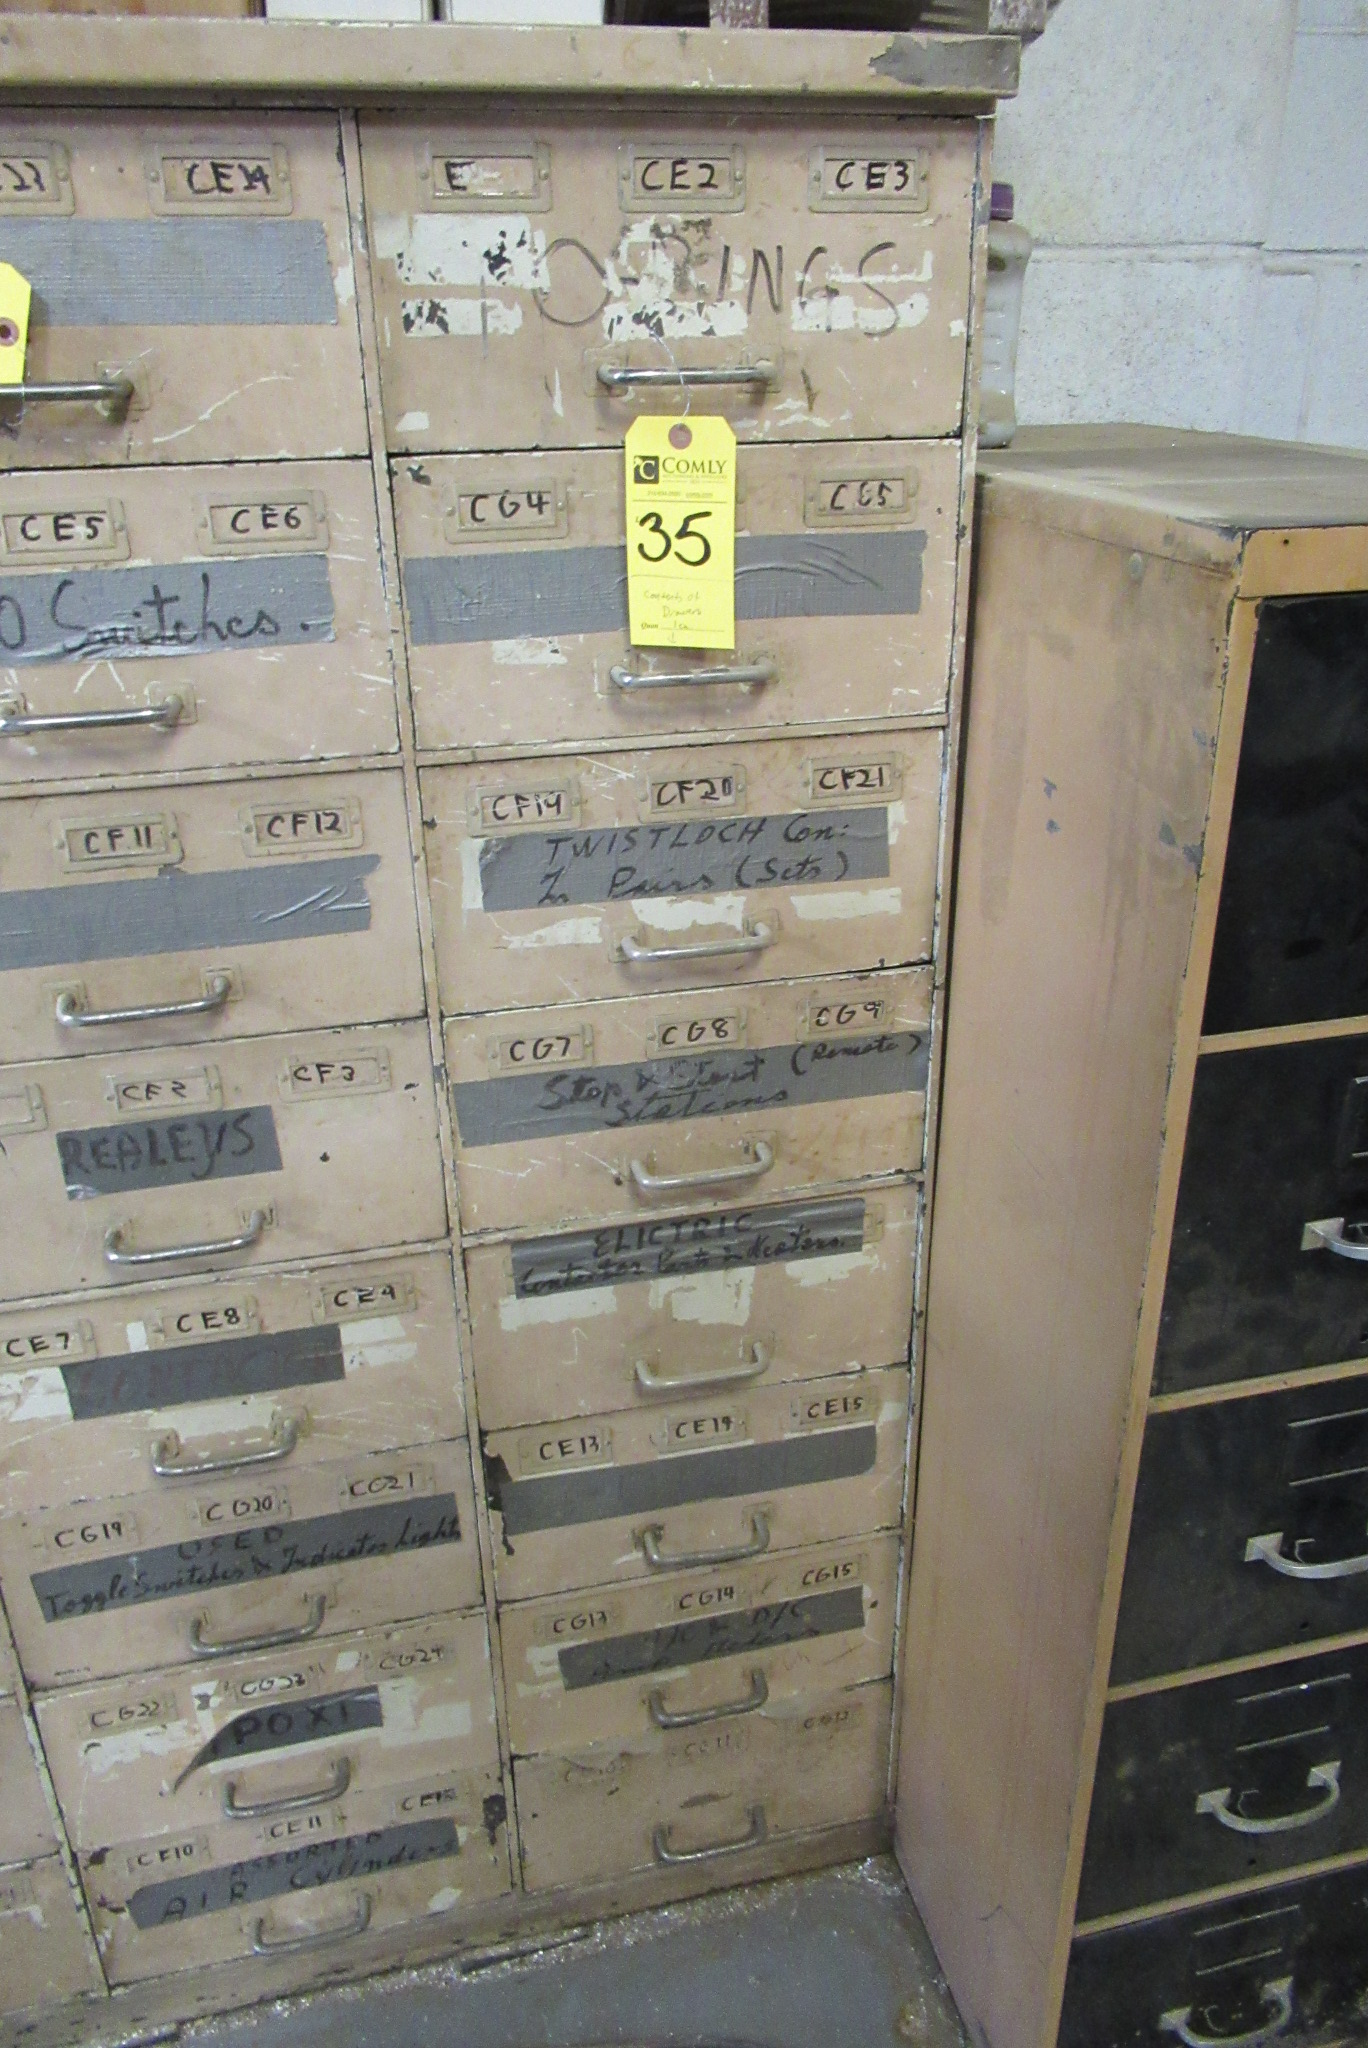 Lot 35 - Contents of Drawers: Bolts, Nuts, Bearings, Asst. (Lot)